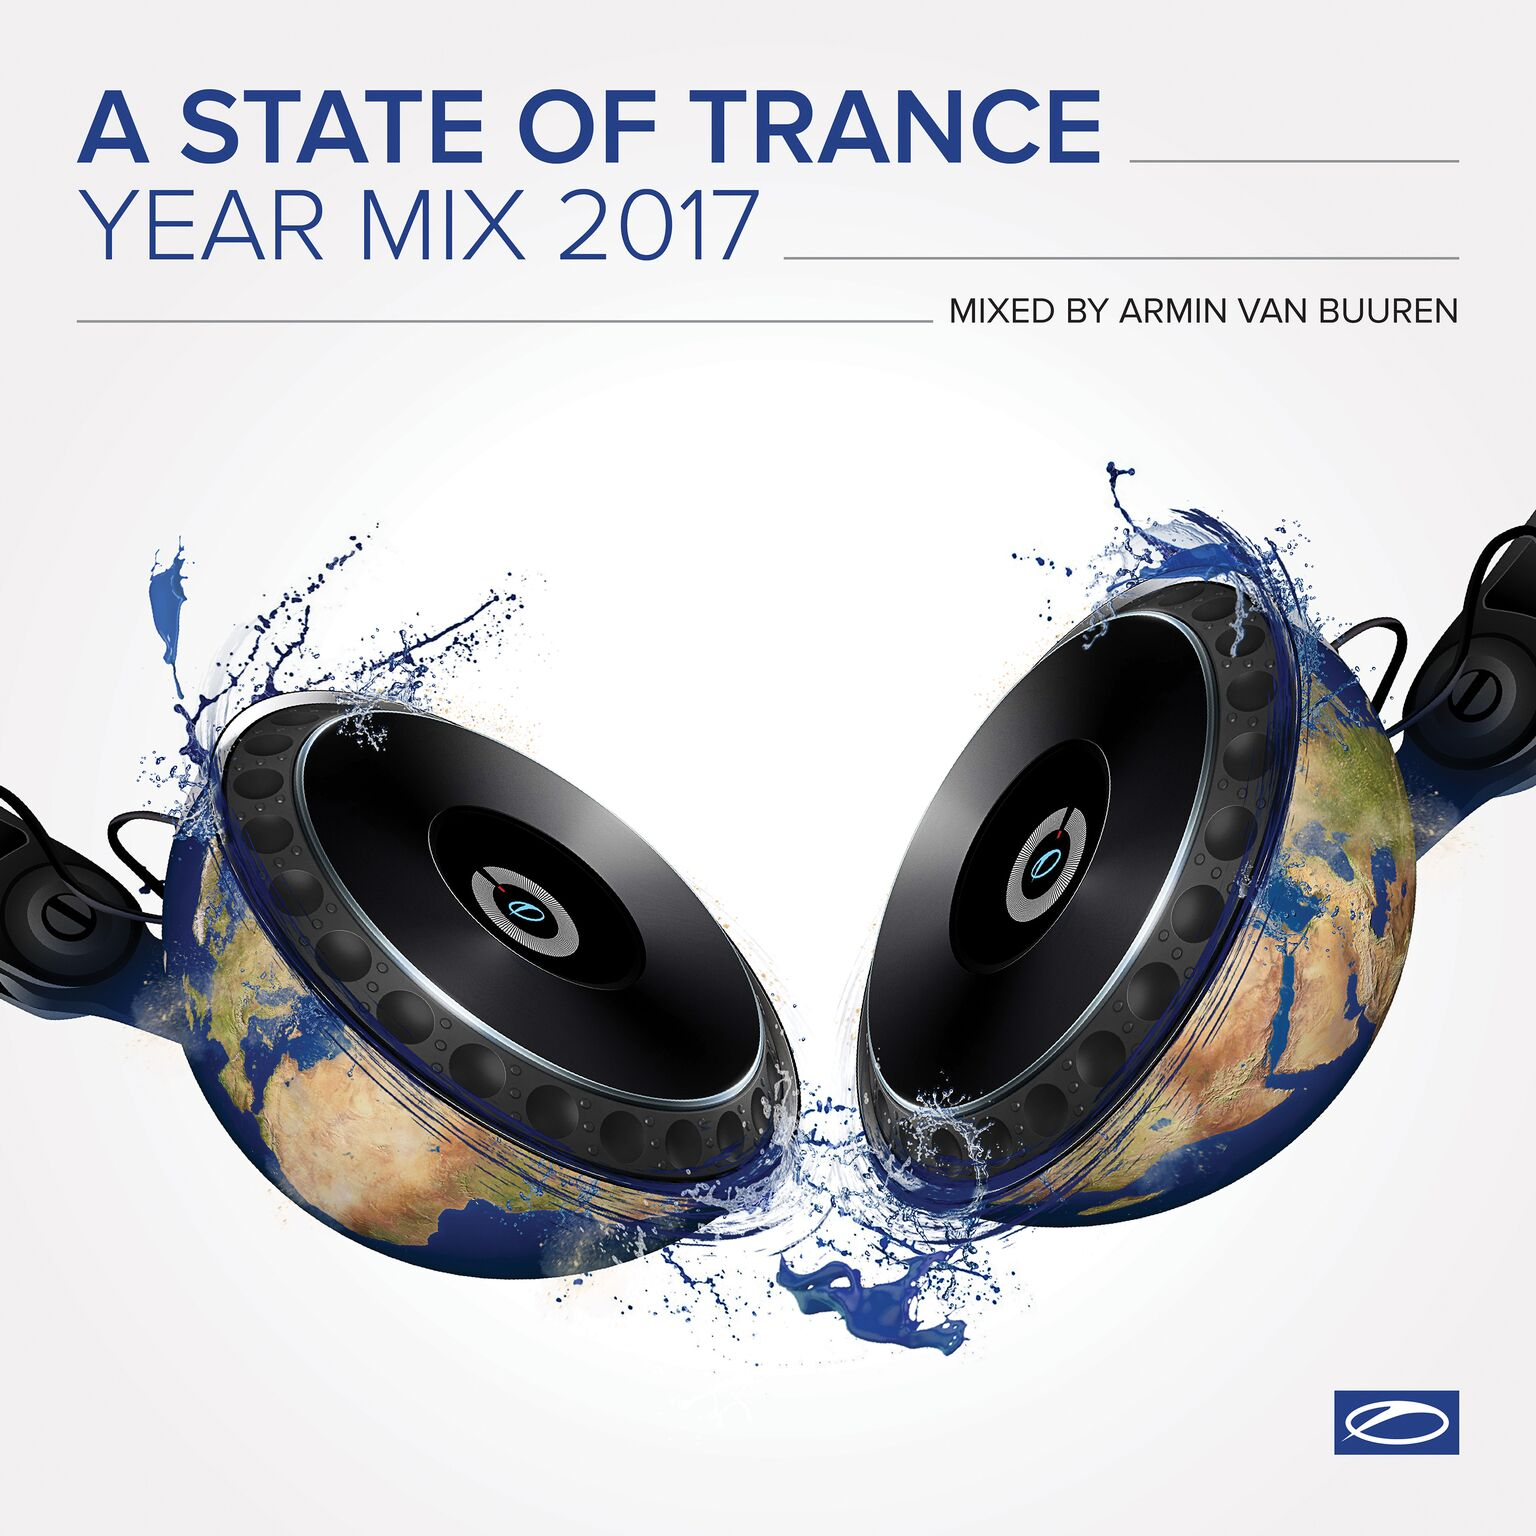 A State Of Trance Year Mix 2017 mixed by Armin van Buuren